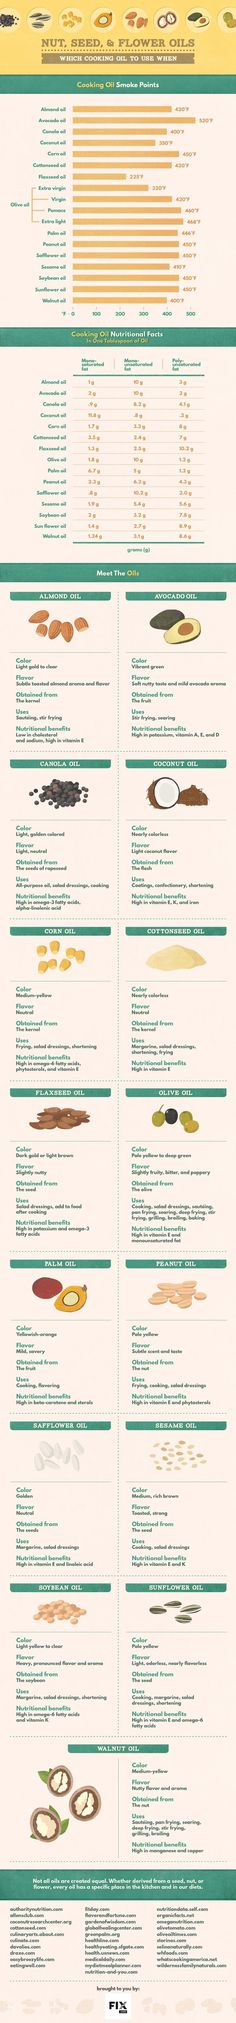 Nut, Seed, and Flower Oils Which Cooking Oil to Use When #infographic #Oil #Food #Health